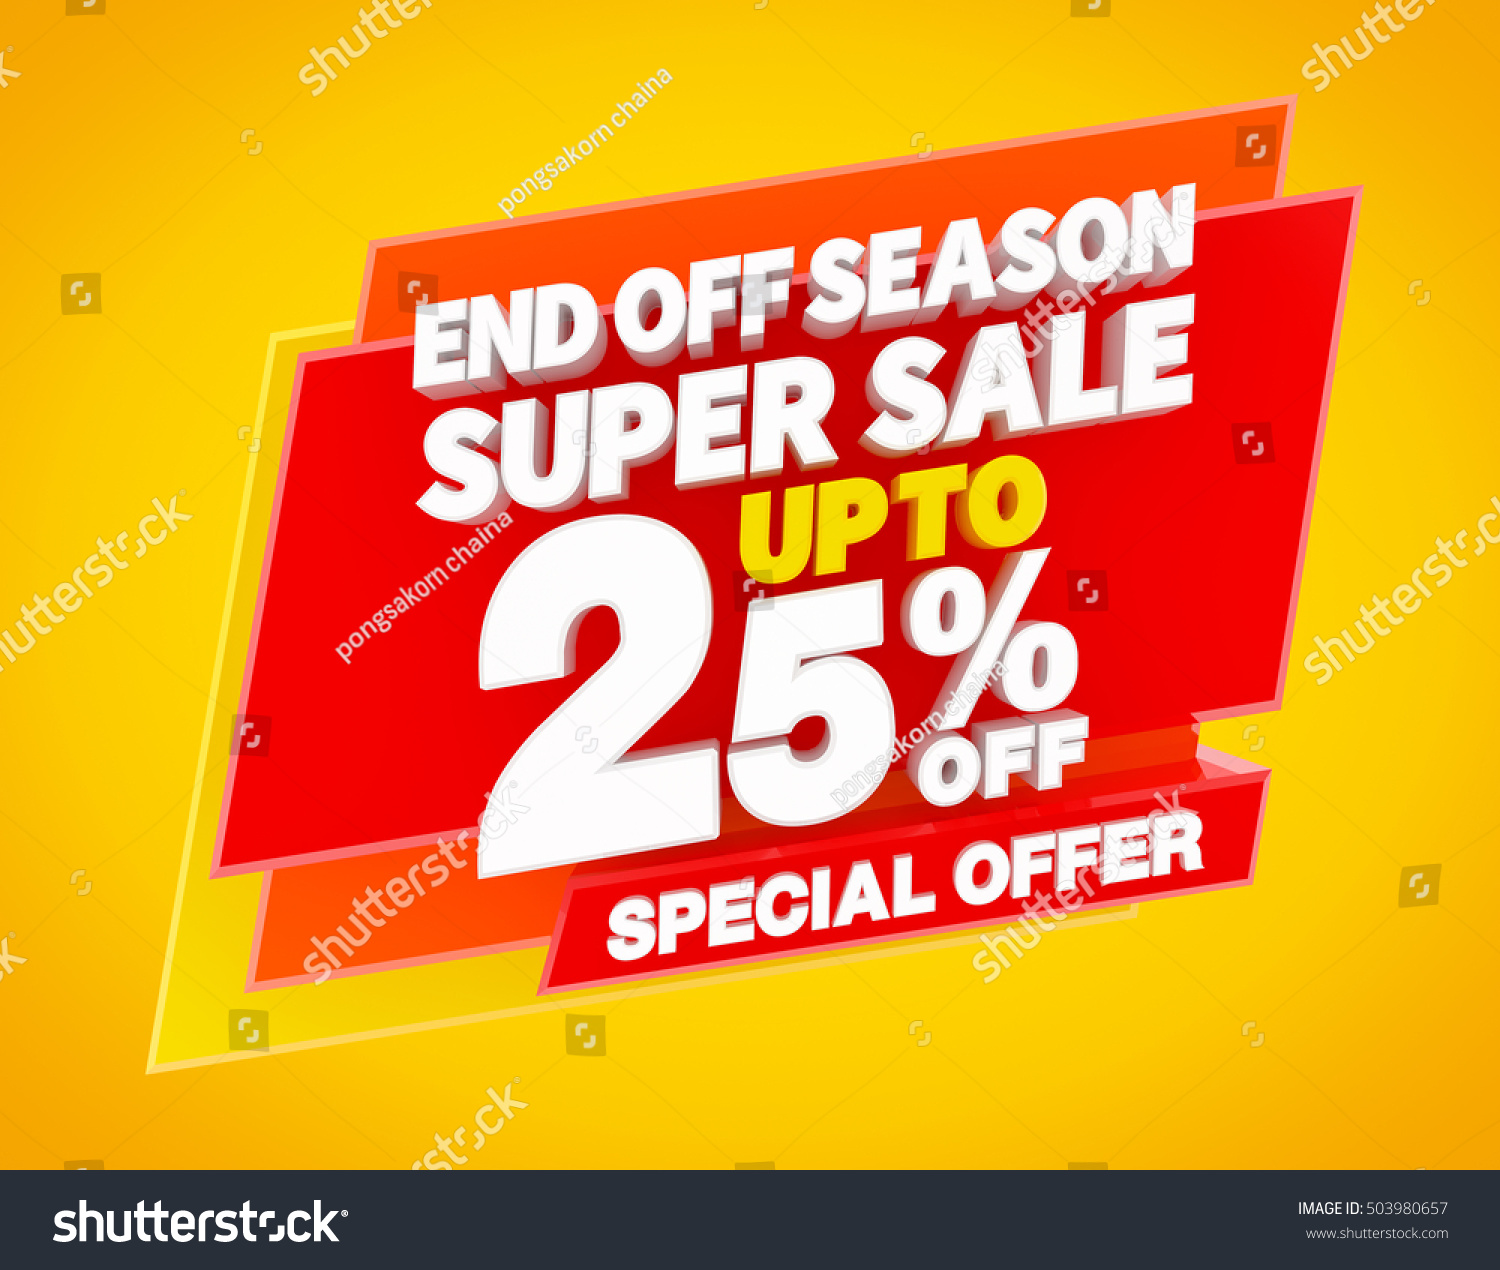 End of Season Sale - UPTO 90% OFF to buy clothing, ethnic wear, footwear, jewellery & watches, bags, lingerie at huge discounts. only at free-desktop-stripper.ml Hurry..! Shop online now..!